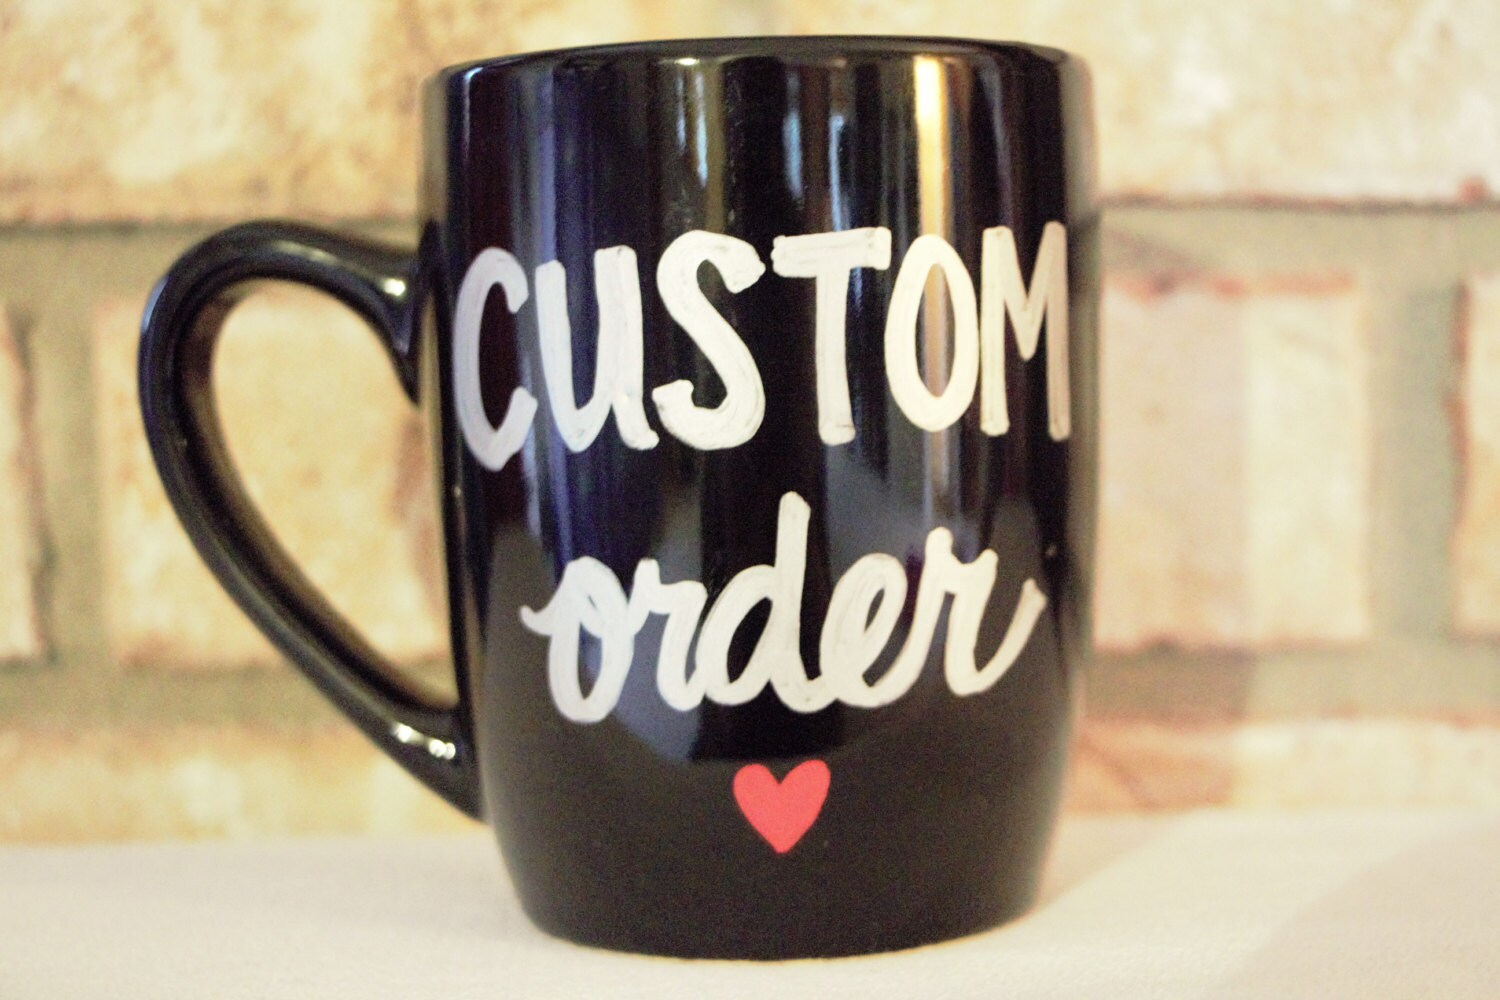 custom mug custom coffee mug custom tea cup personalized. Black Bedroom Furniture Sets. Home Design Ideas